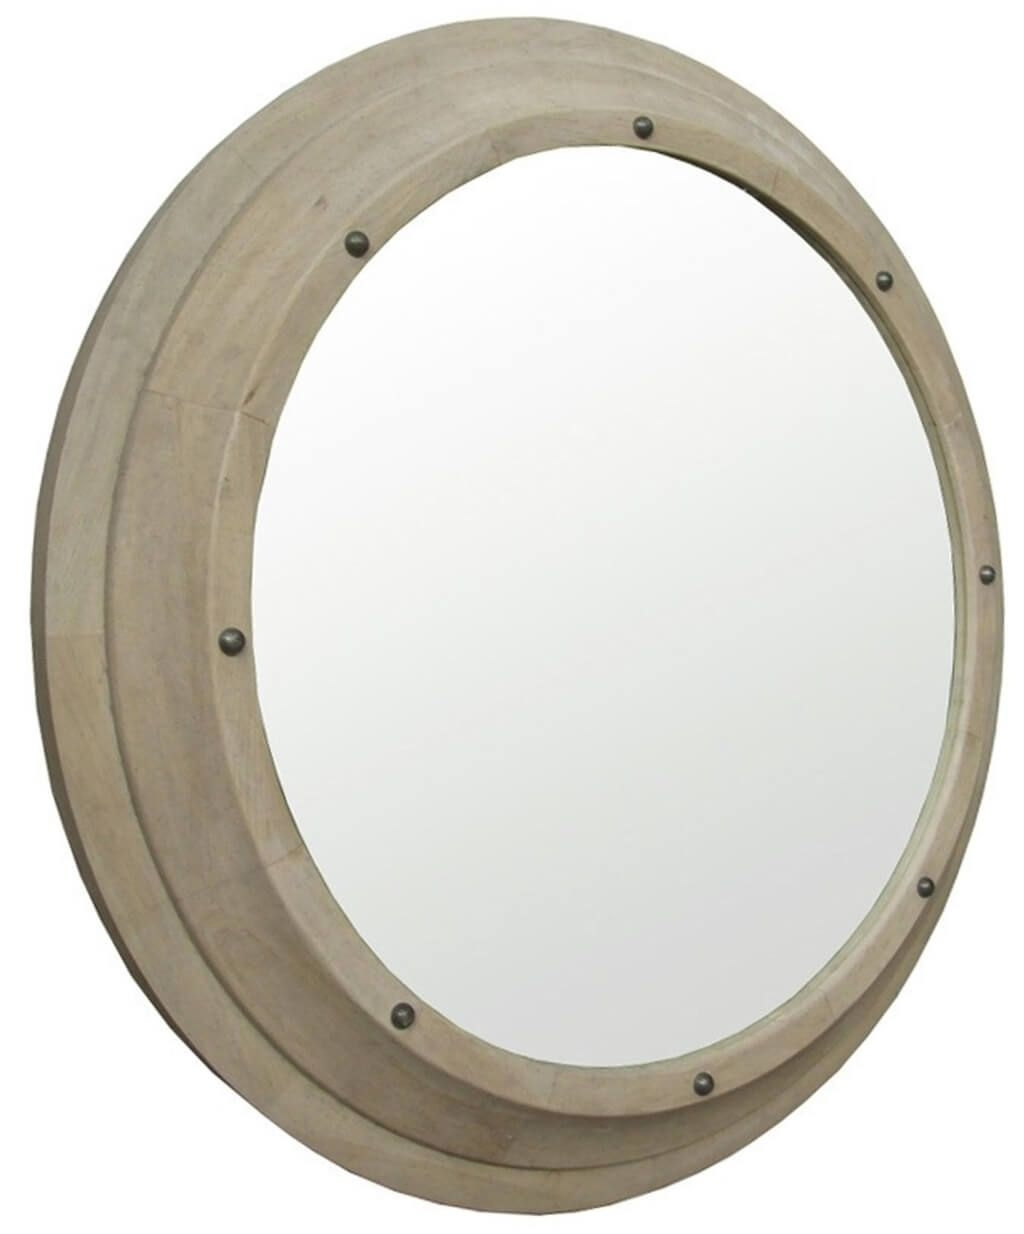 Home Decoration Best Rustic Porthole Mirror Decorative Porthole Pertaining To Chrome Porthole Mirror (Image 7 of 15)